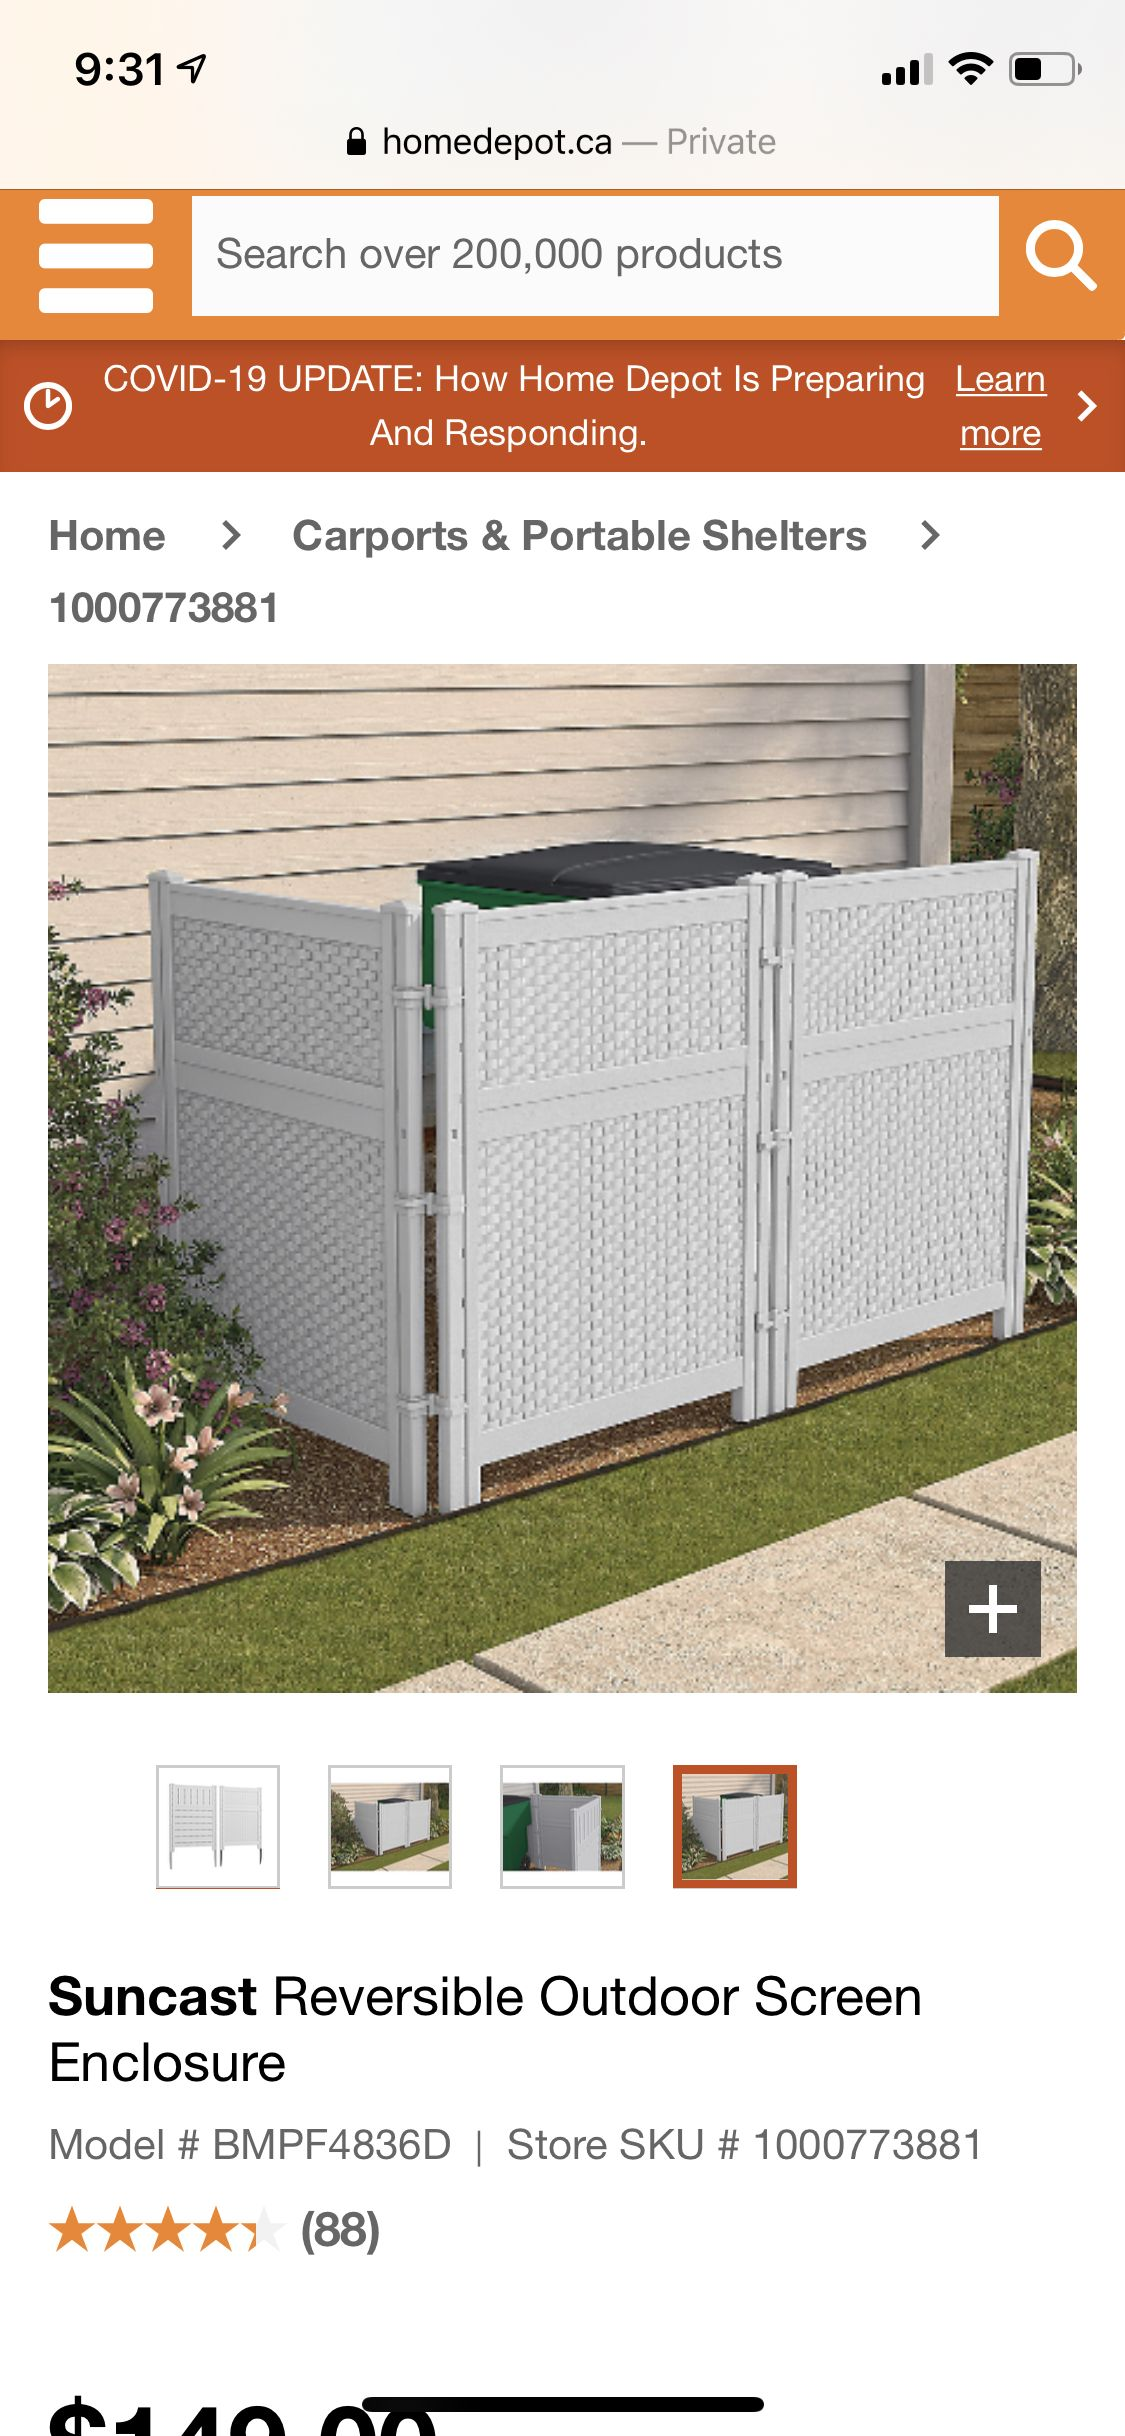 Pin By גבי חי On Portable Shelter In 2020 Portable Shelter Outdoor Screens Screen Enclosures